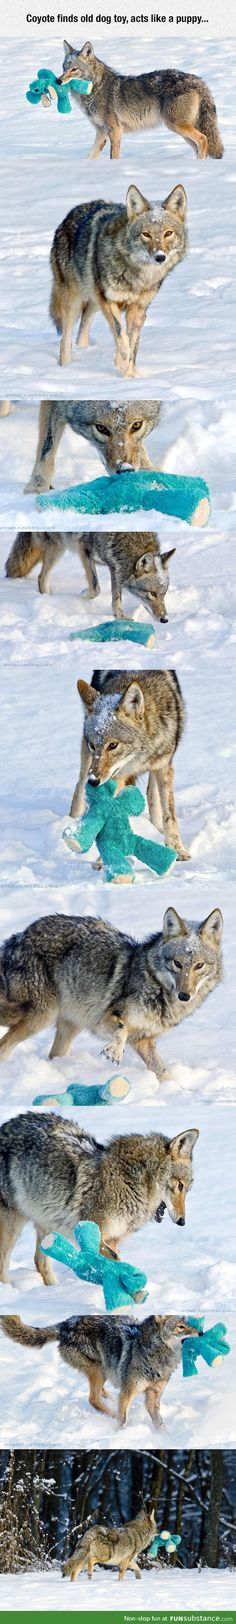 Even Coyotes like dog toys